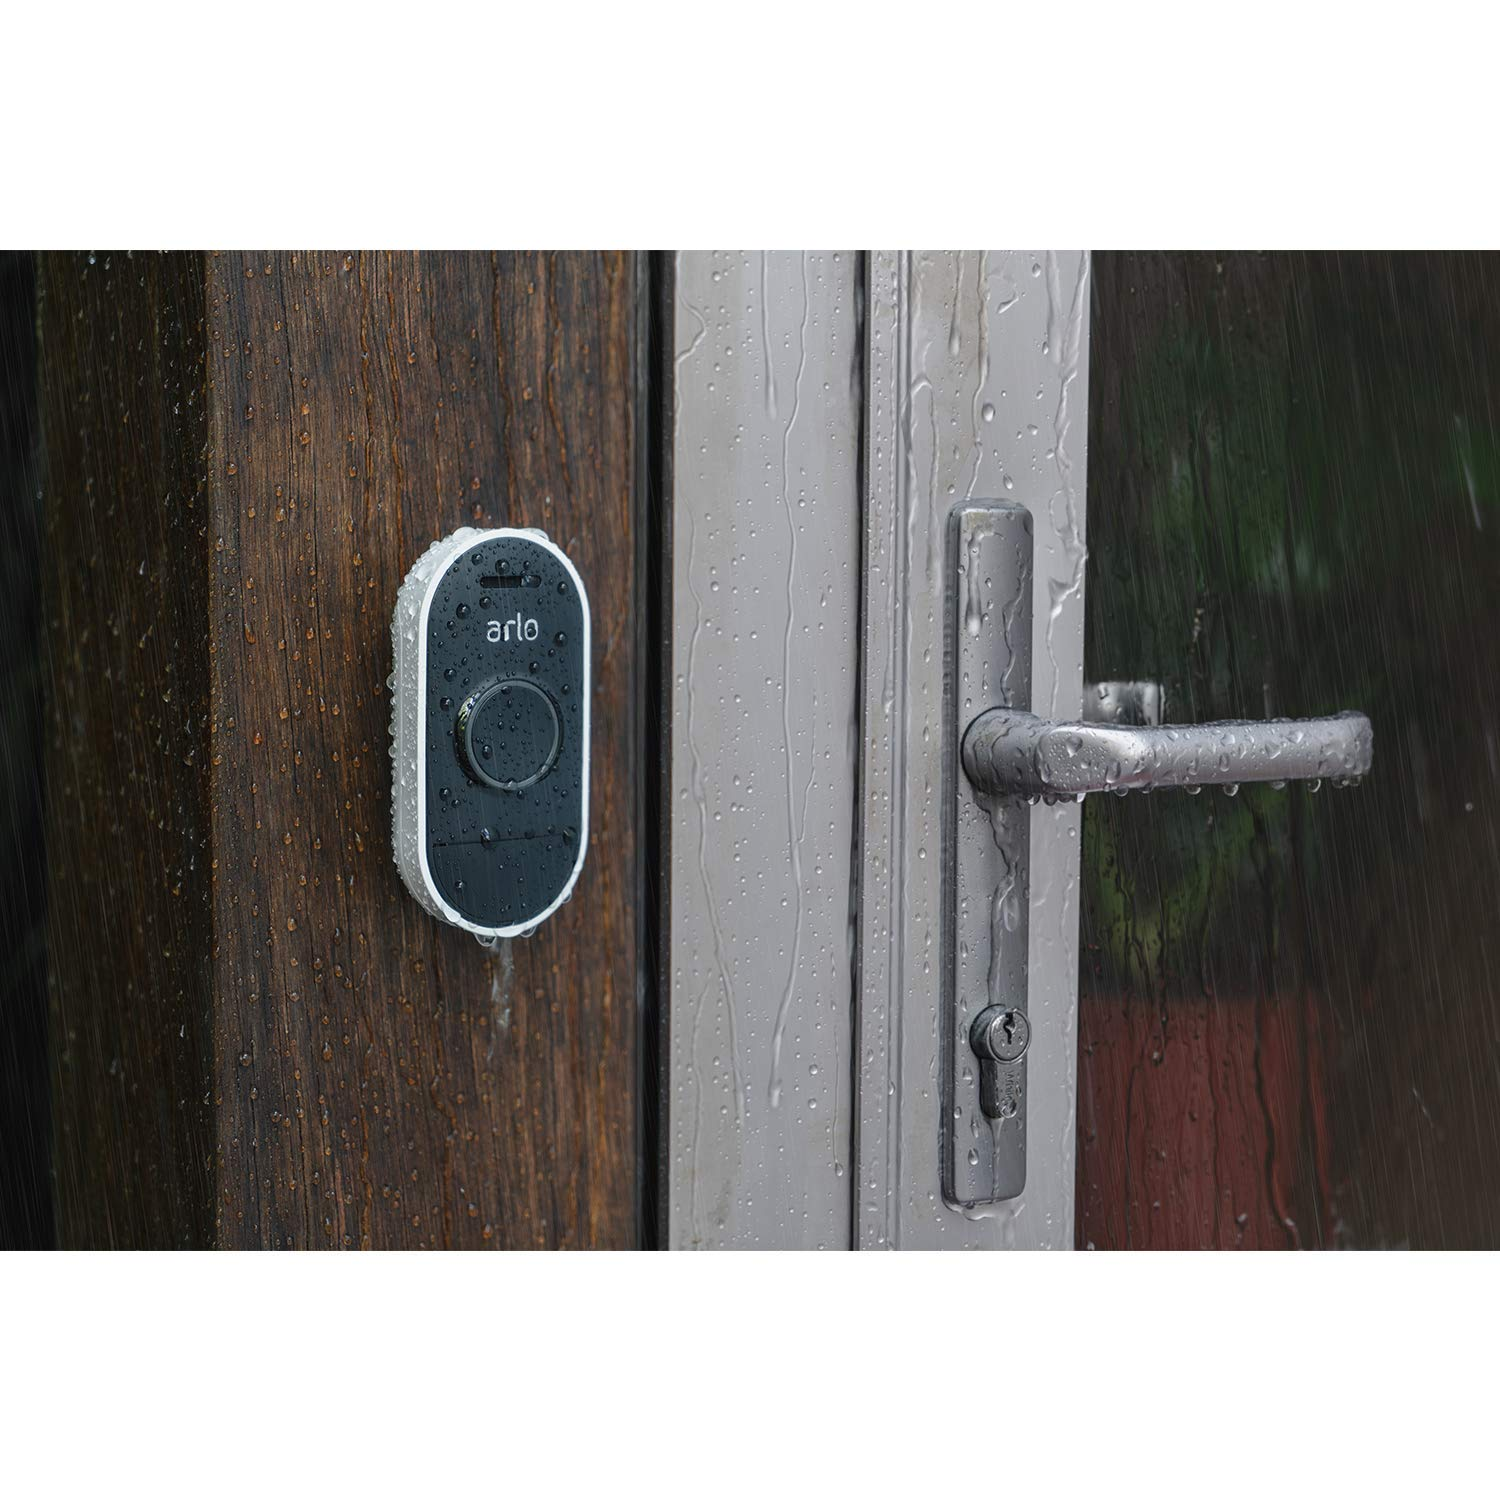 The best smart doorbell cameras for your home